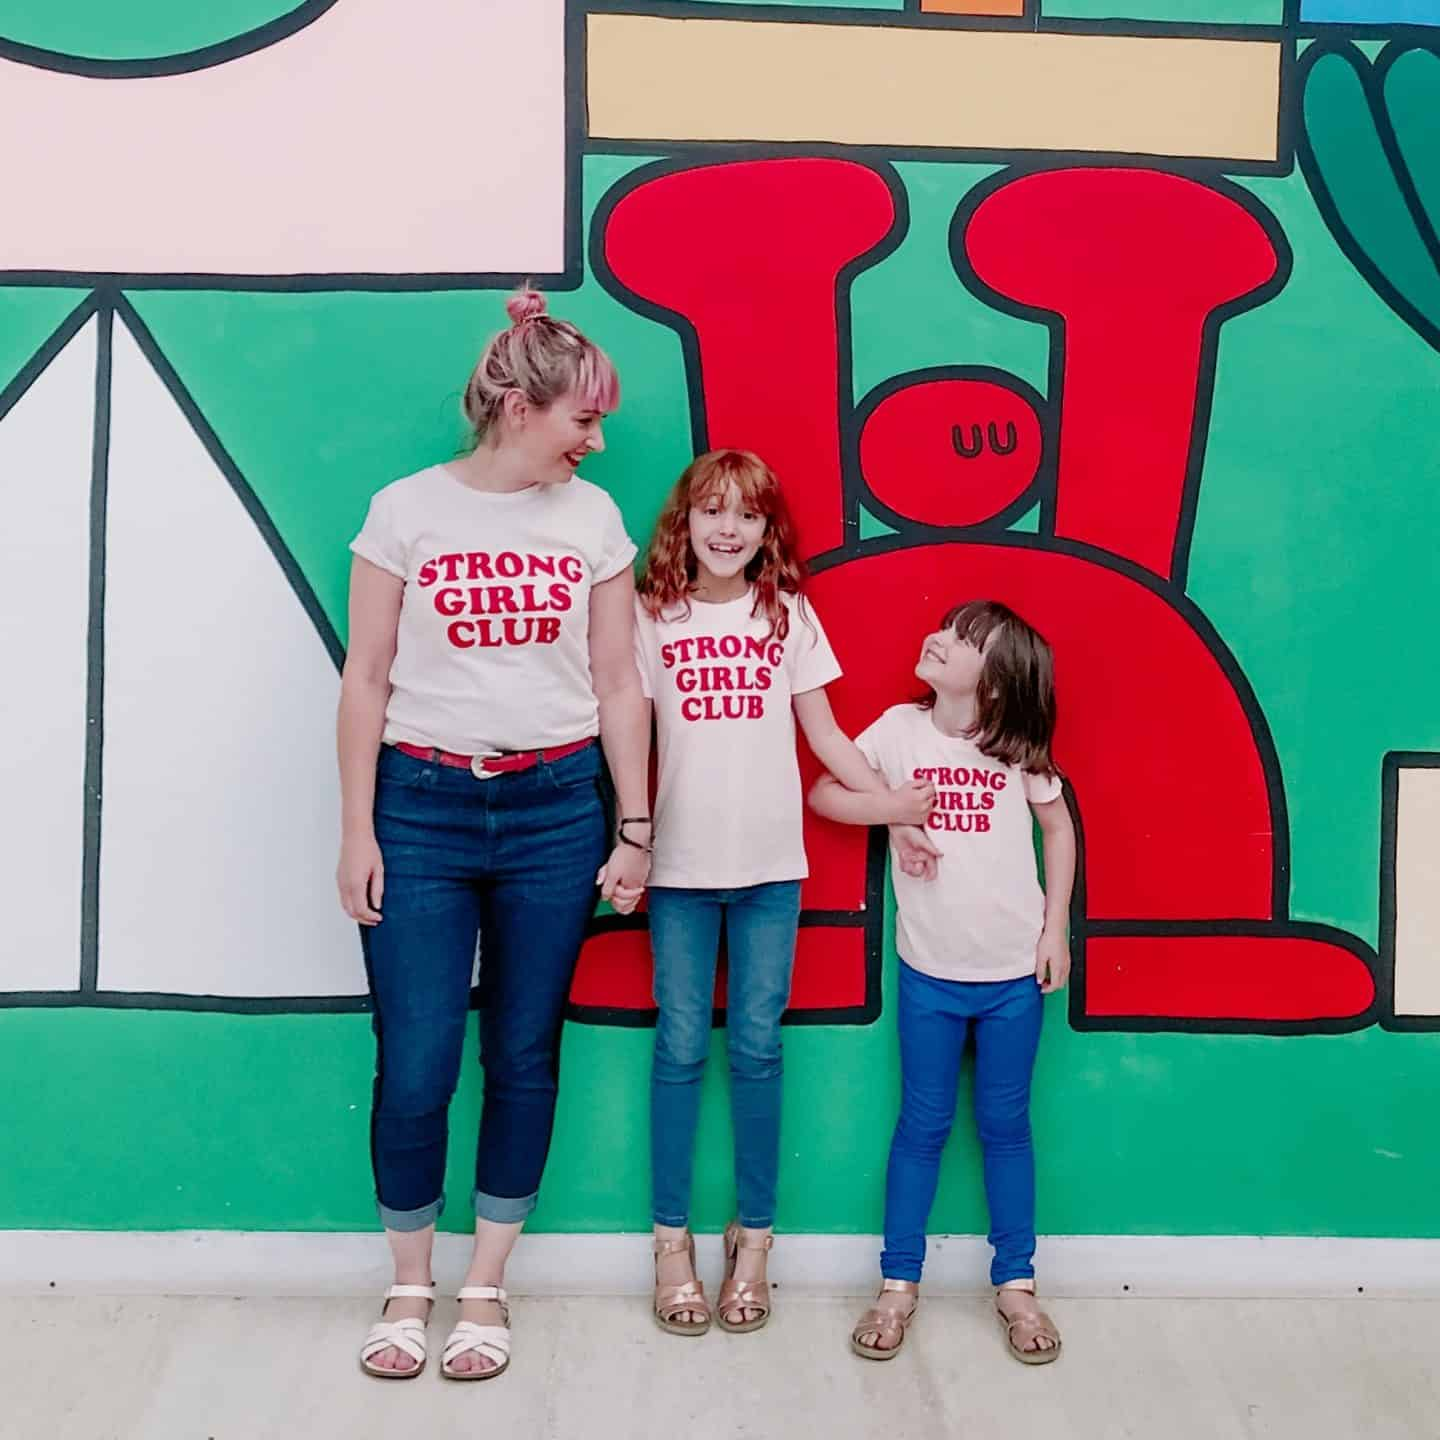 Three Strong Girls Club organic ethical empowerment t-shirts by Mutha.Hood